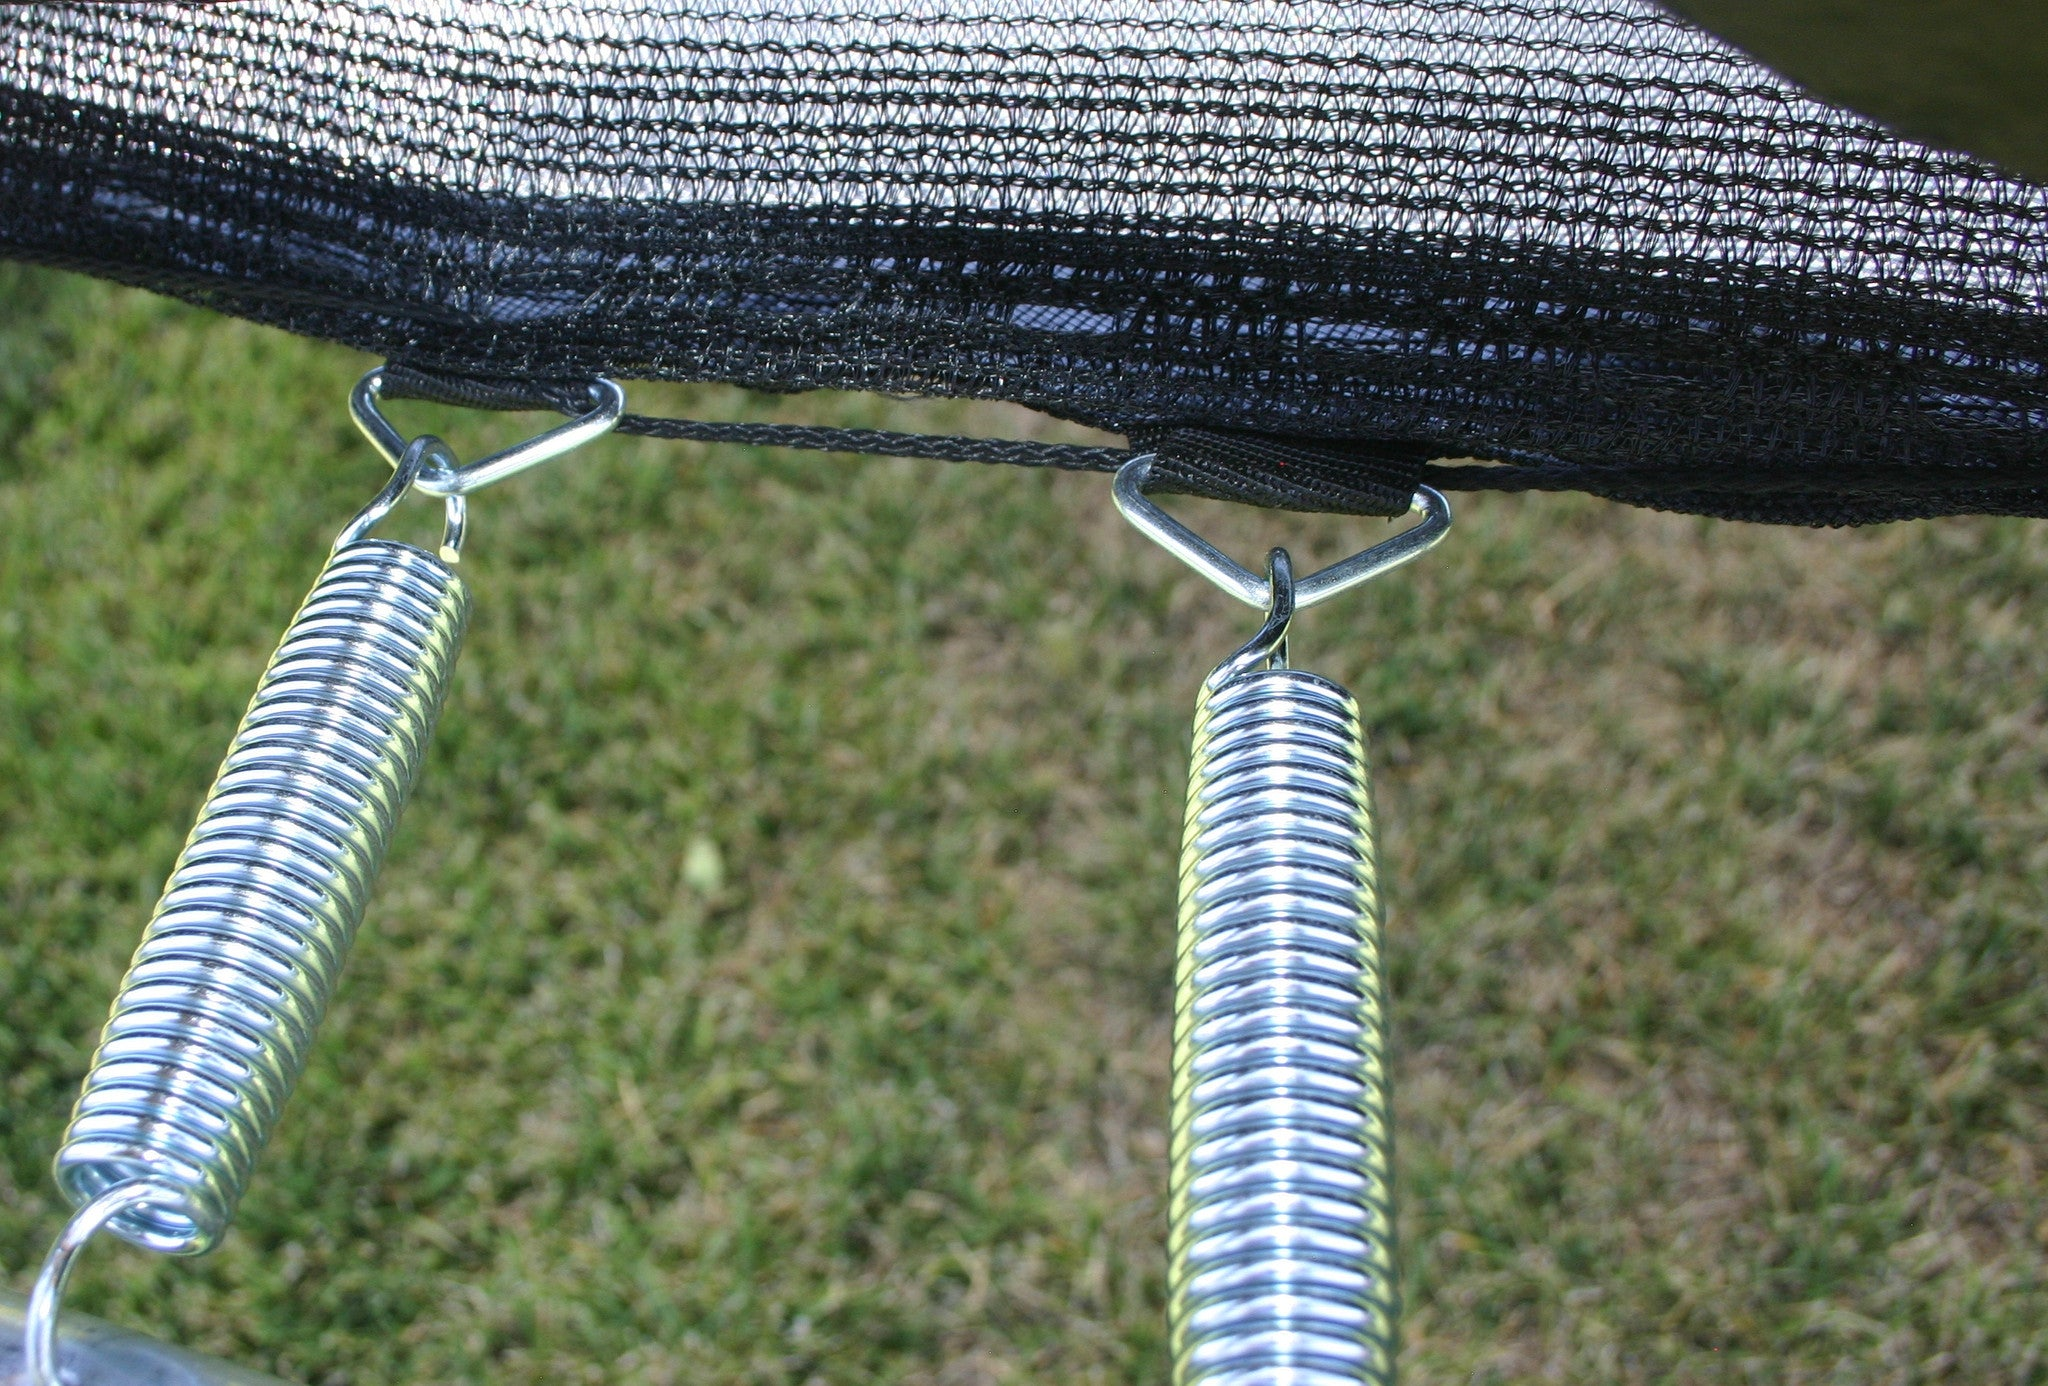 Trampoline Parts-Safety Net Enclosure Tie Downs (a Full Set of 12)